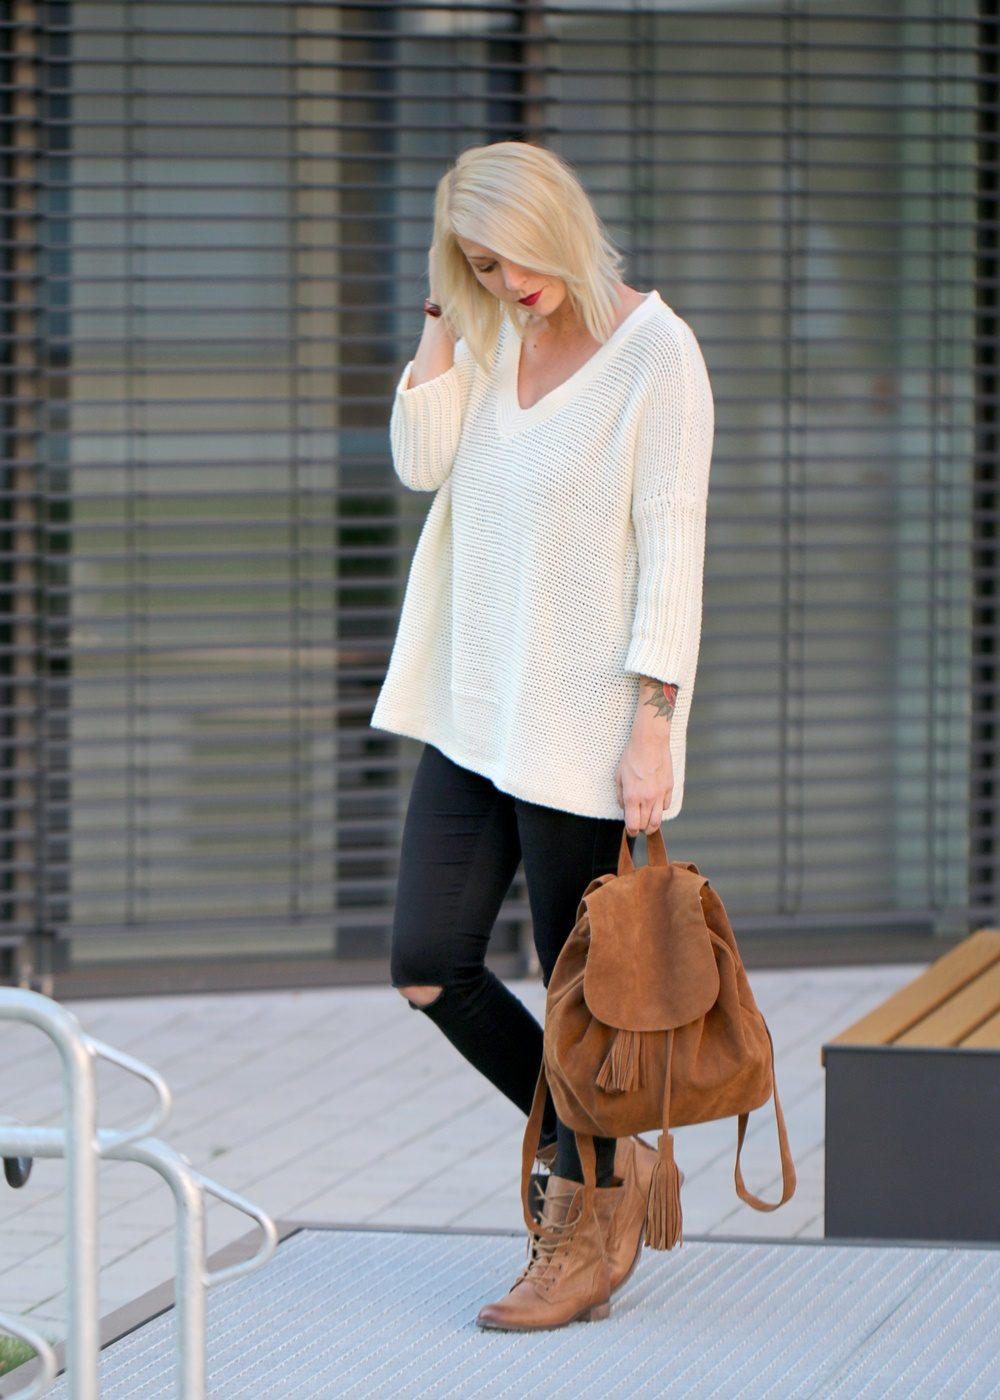 fashionbloggerin-karlsruhe-outfit-braune-schnuerboots-zign-strickpullover-noisy-may-fransenrucksack-just-fab-2